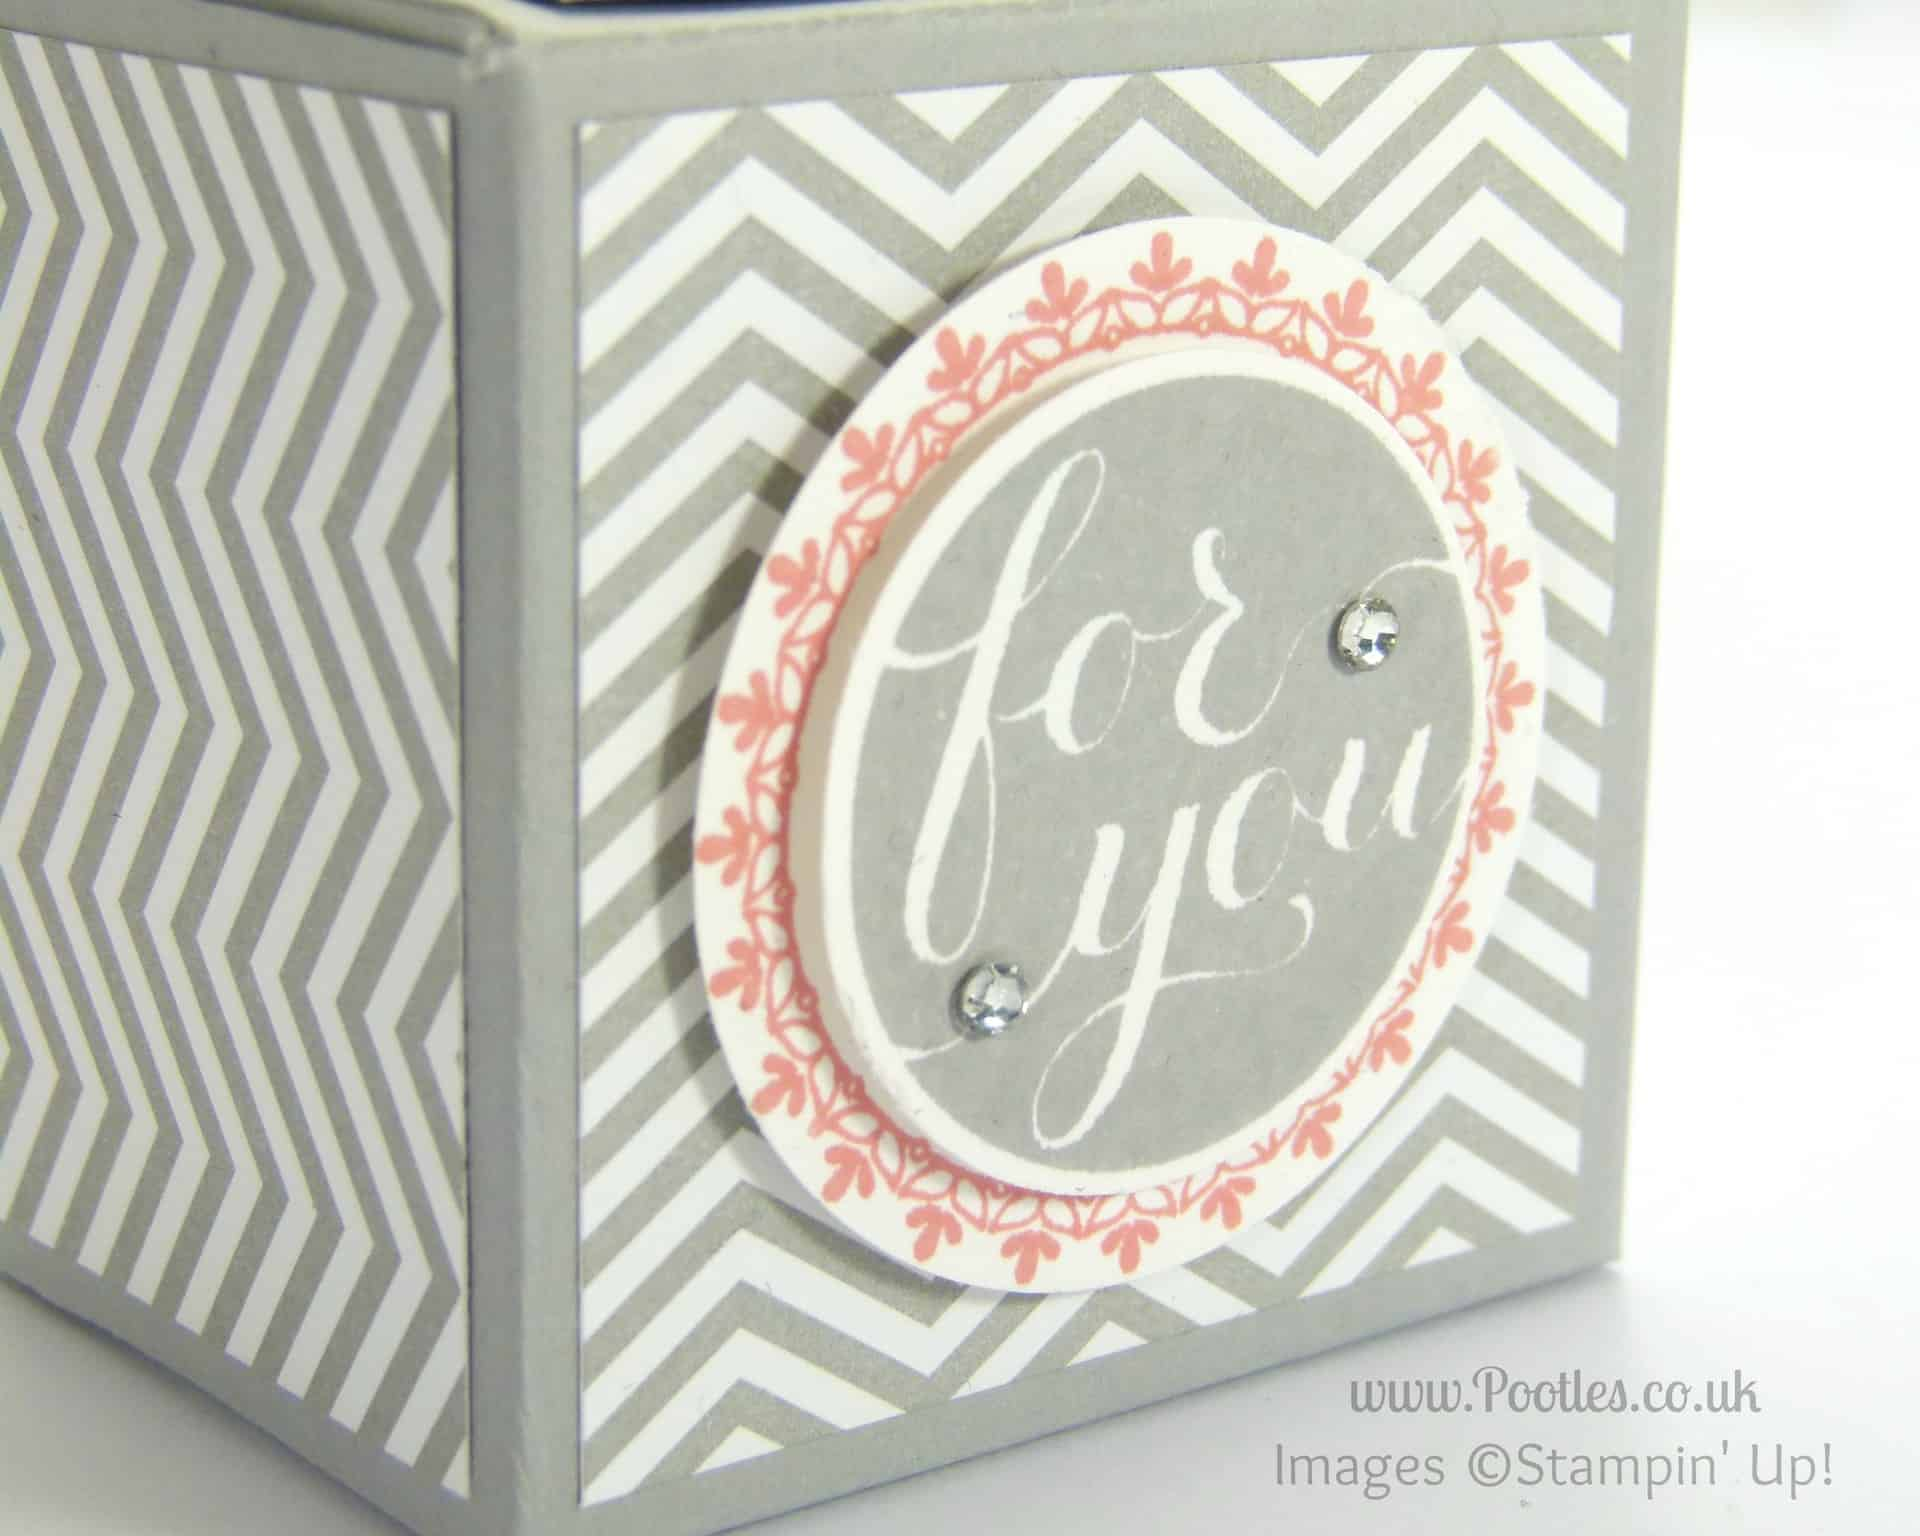 Stampin' Up! UK Demonstrator Pootles - Pillow Gifts (Double Giant Tea Light Treat Box) stamped detail